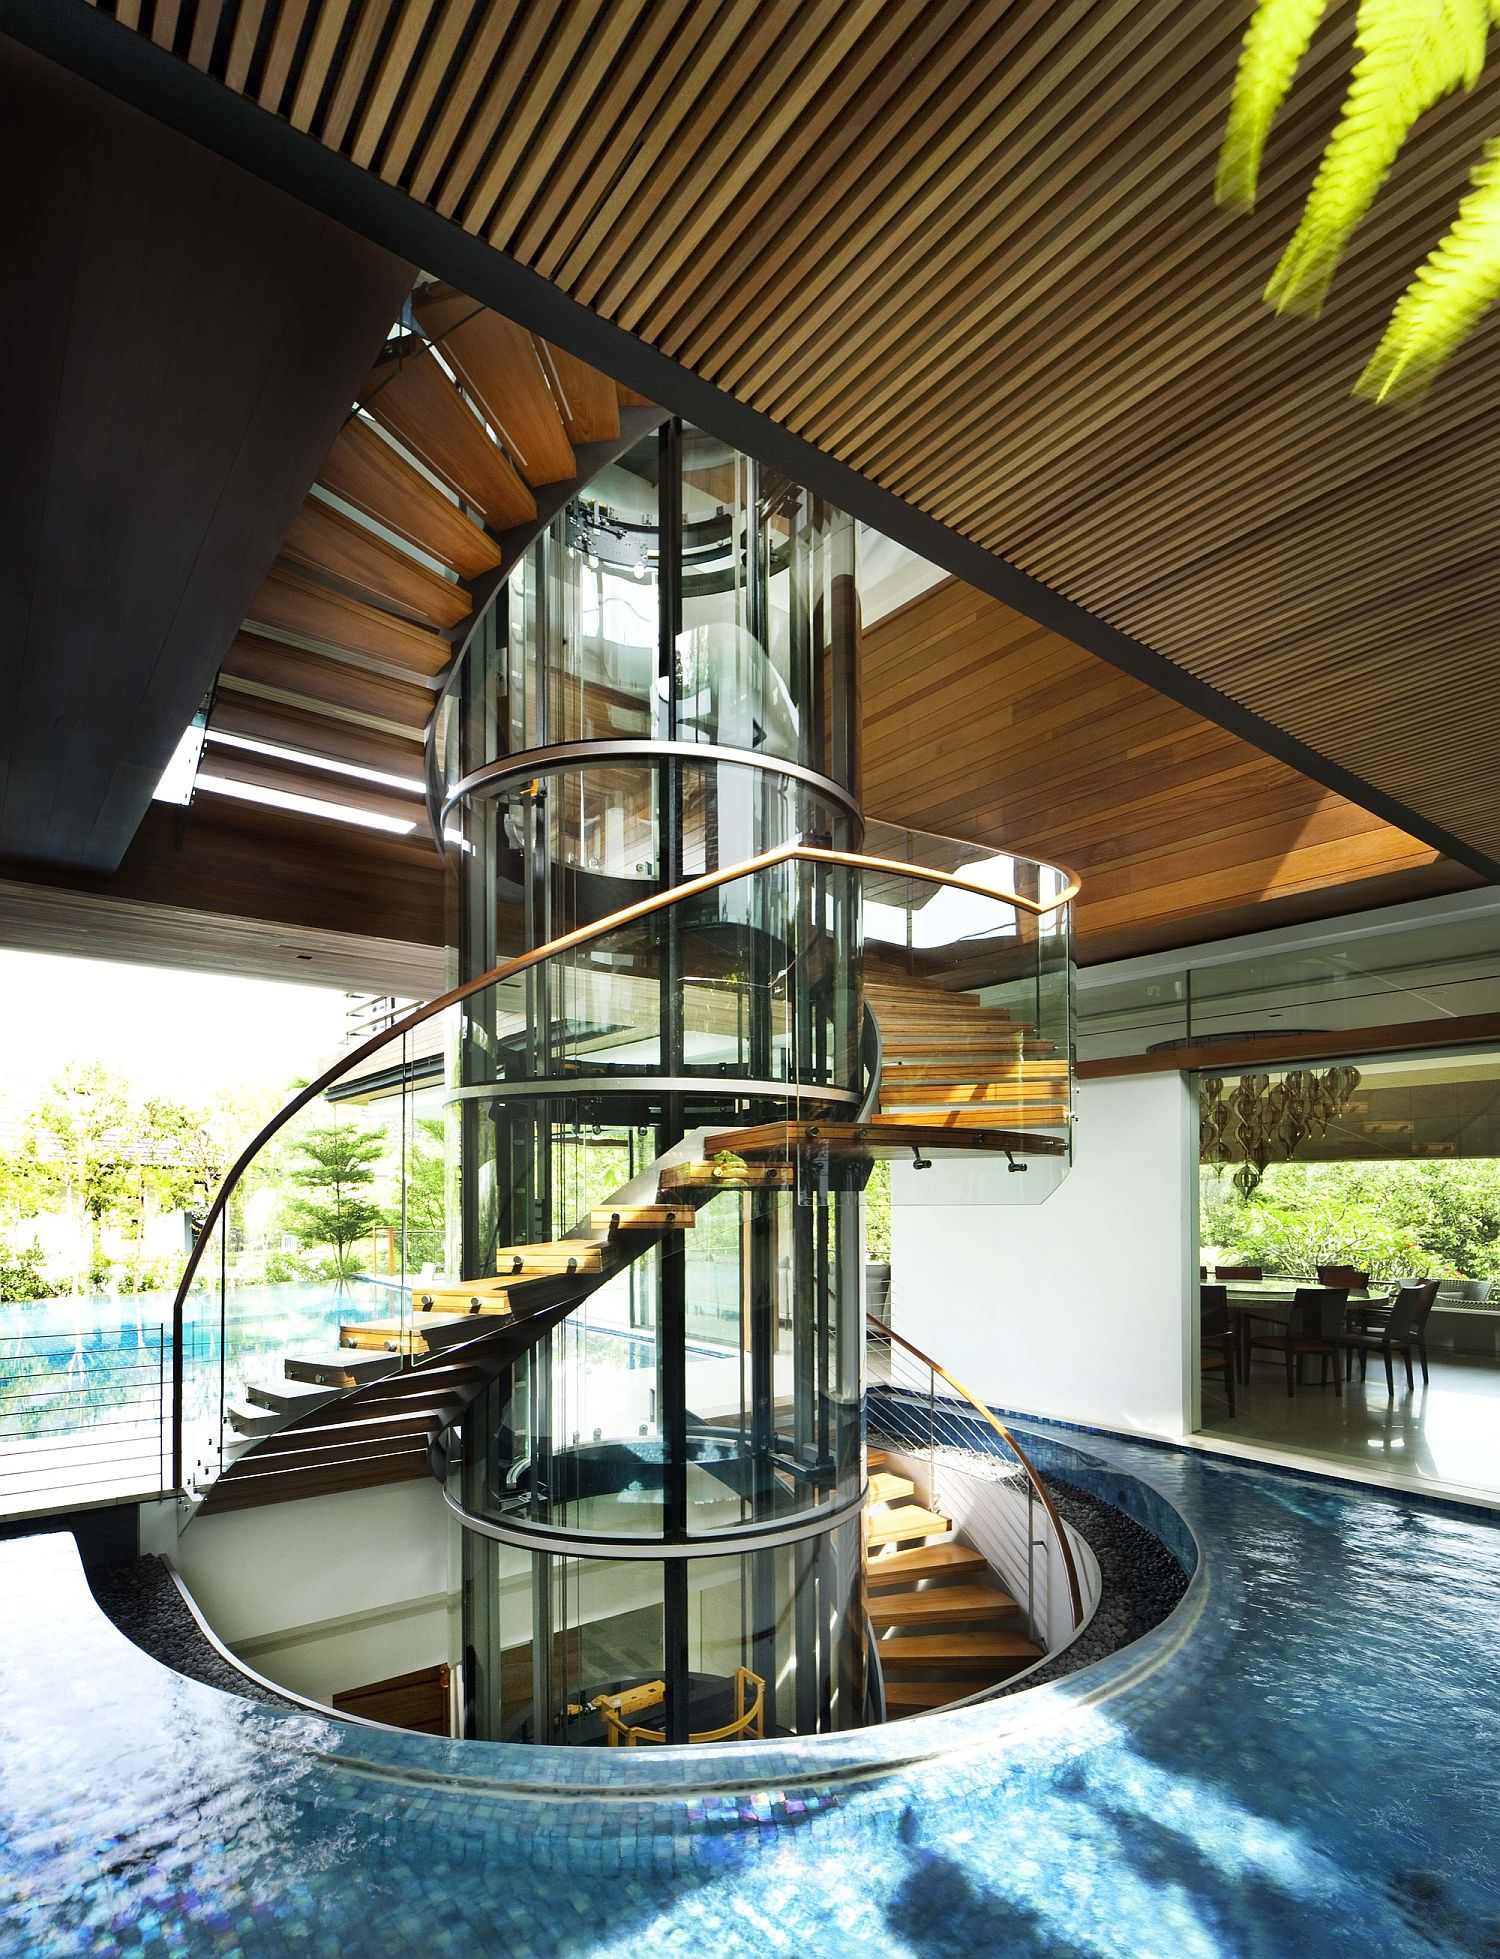 Spiral staircase connects various levels of the house even as the pool around it makes a statement